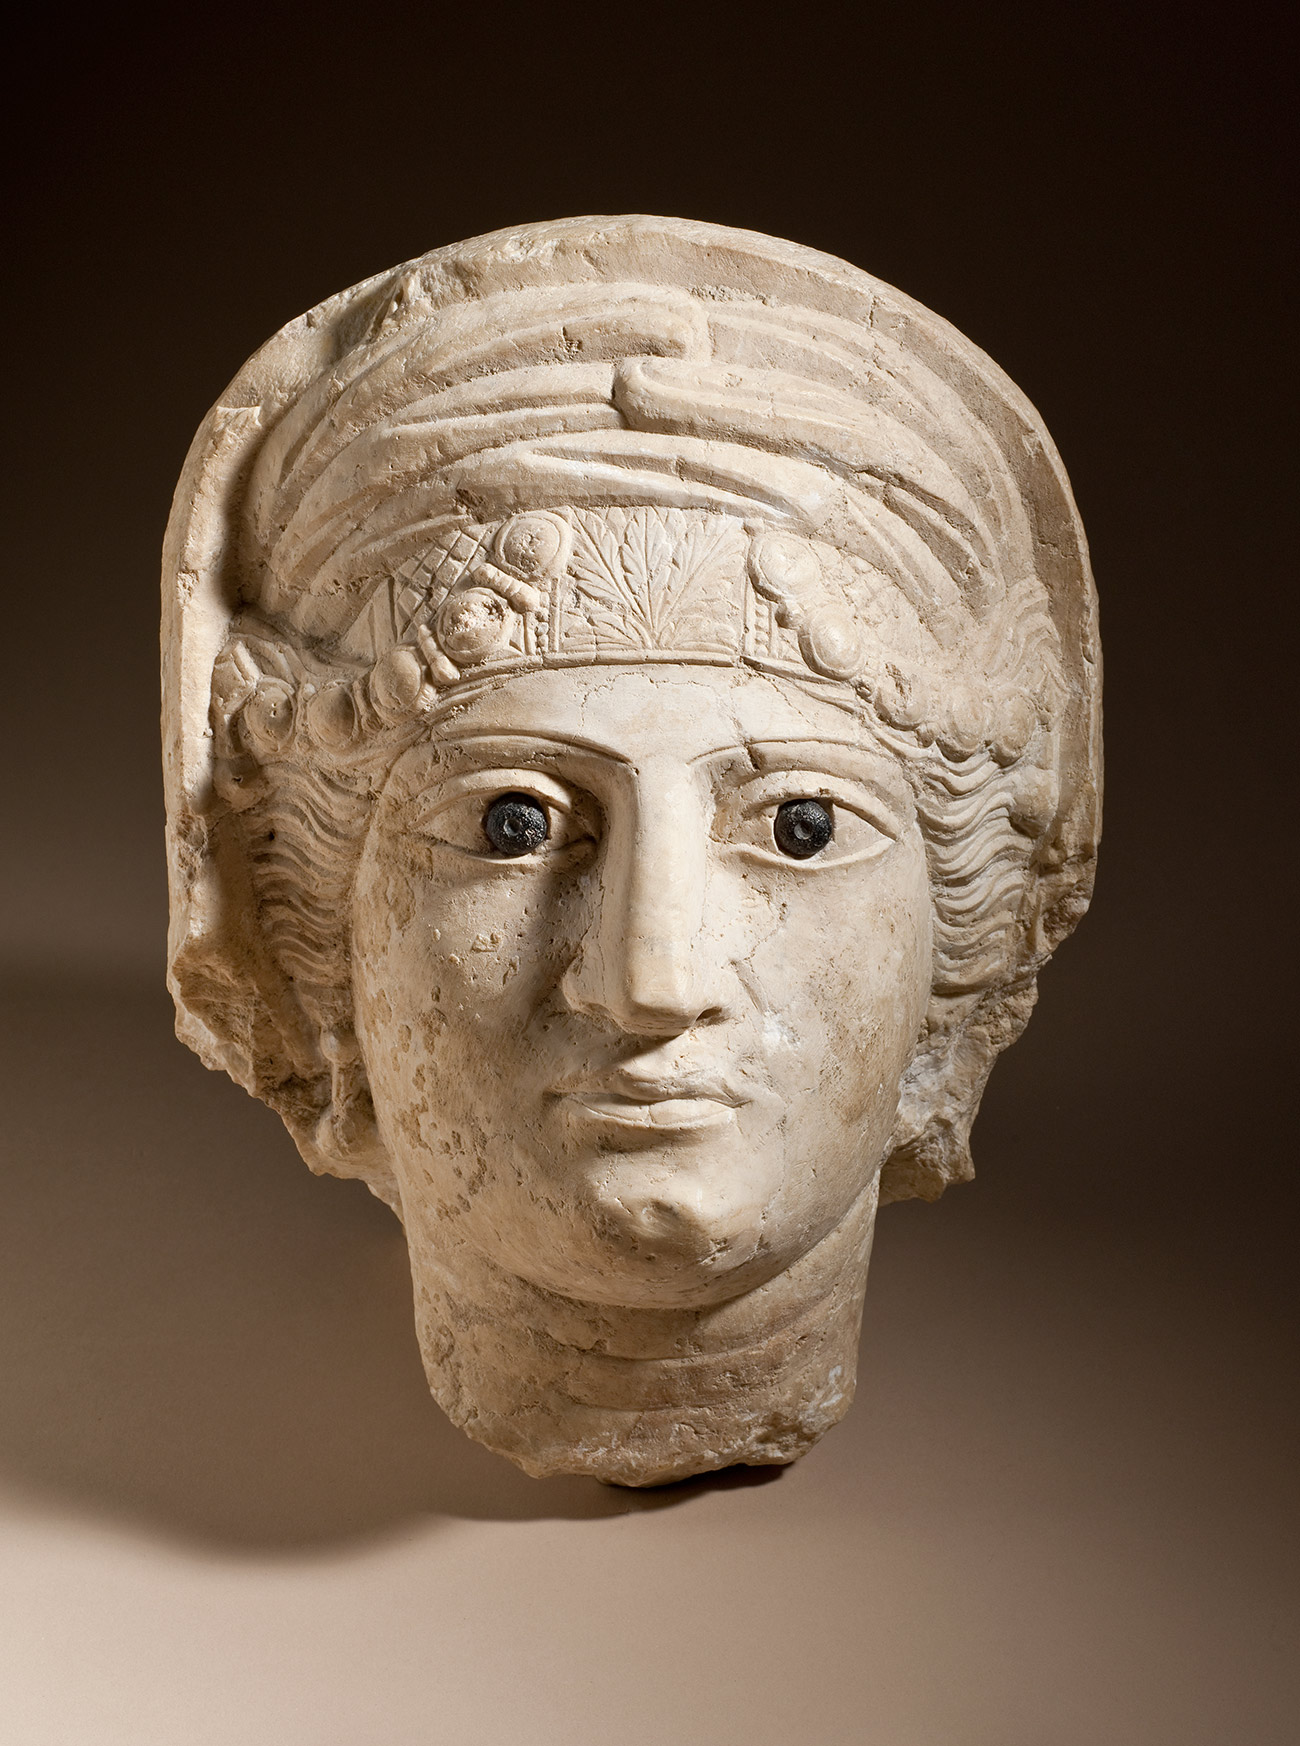 Carved limestone head of a woman with black-painted irises and ornamented headgear